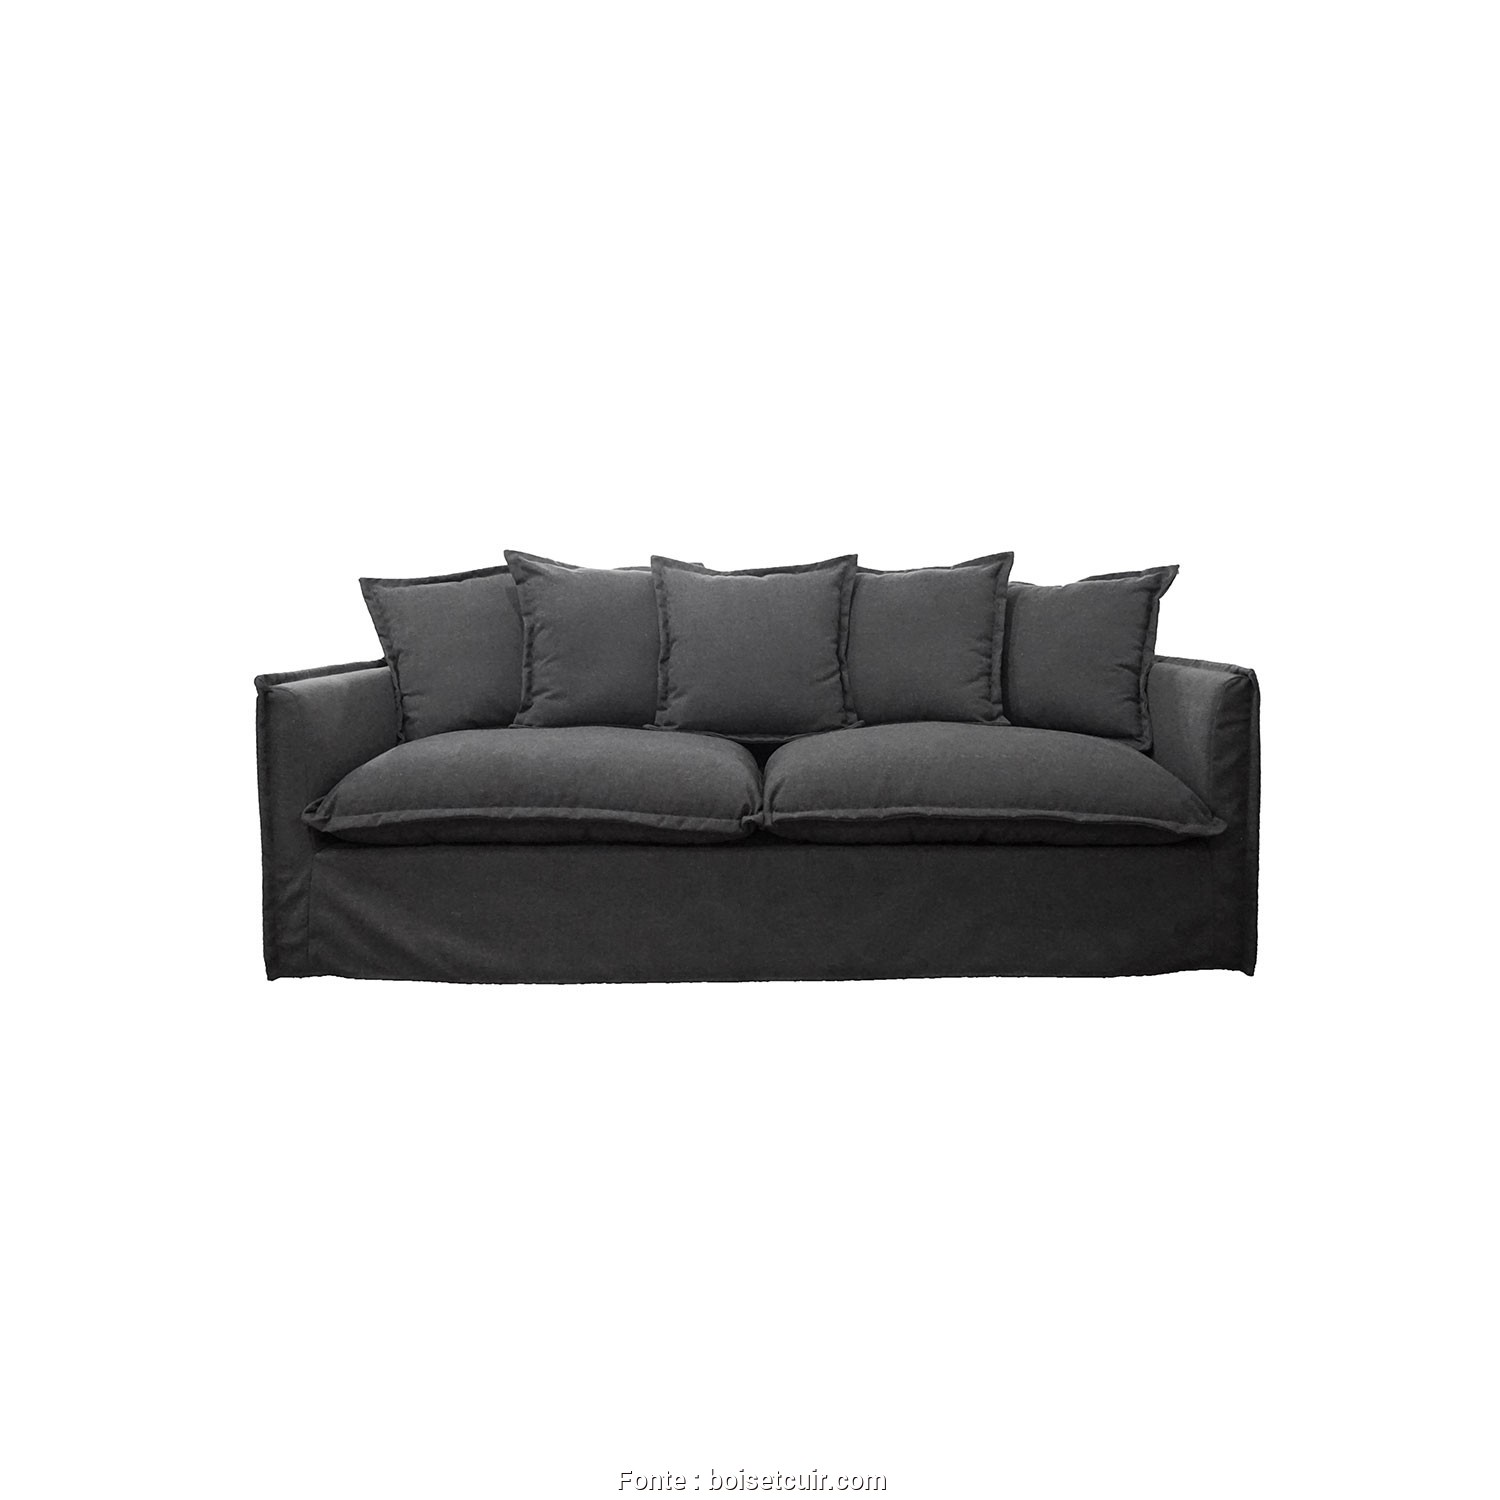 Divano 3 Seater Sofa, Costoso Divano 3 Seater Sofa, 83*39*35, (Upholstered Polyester/Linen